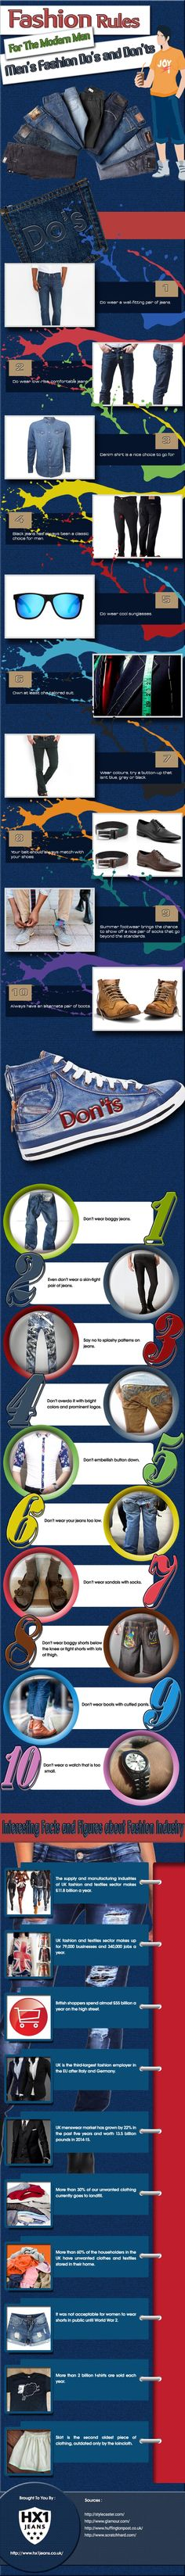 Fashion Rules For The Modern Man